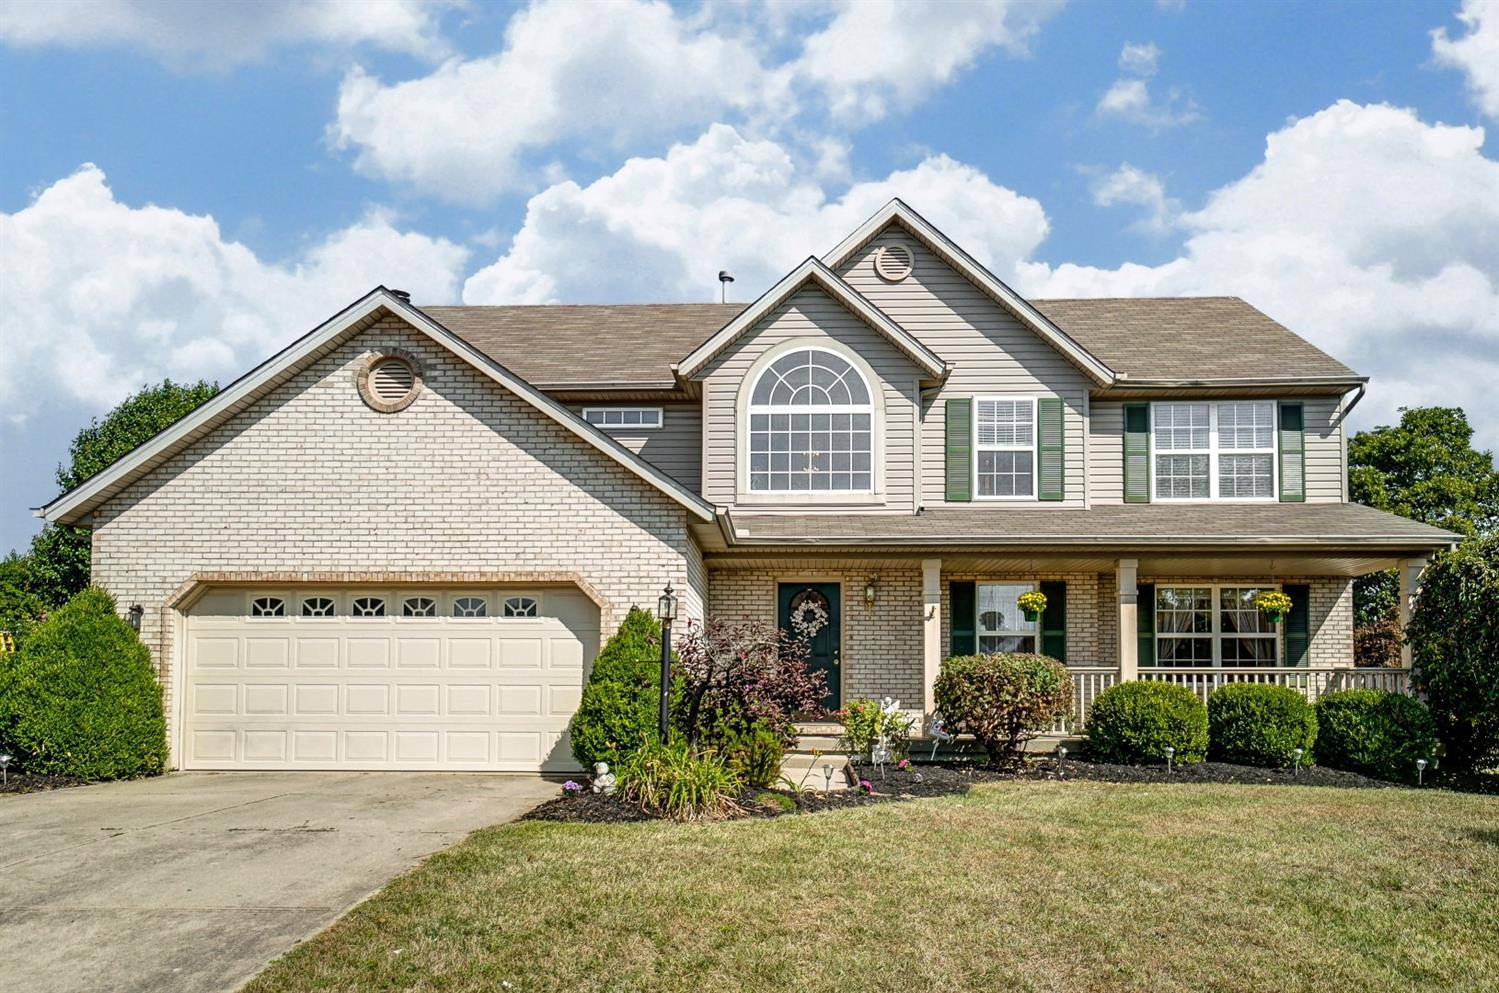 Property for sale at 4864 Brooke Hill Court, Liberty Twp,  Ohio 45011